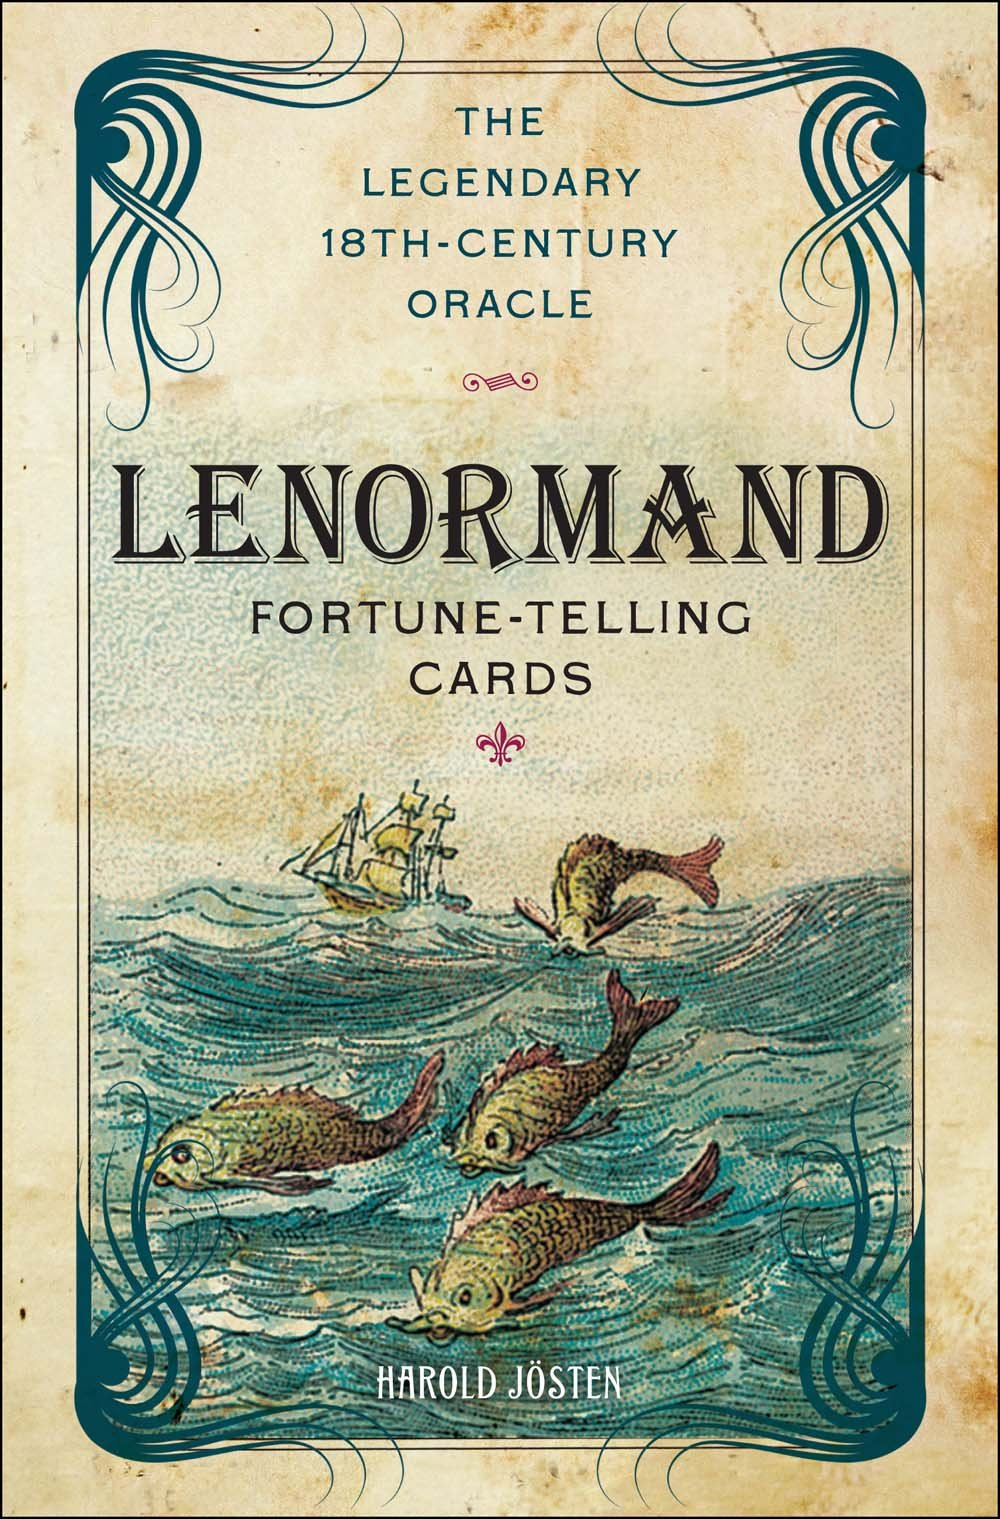 The Lenormand Fortune-telling Cards: The Legendary 18th-Century